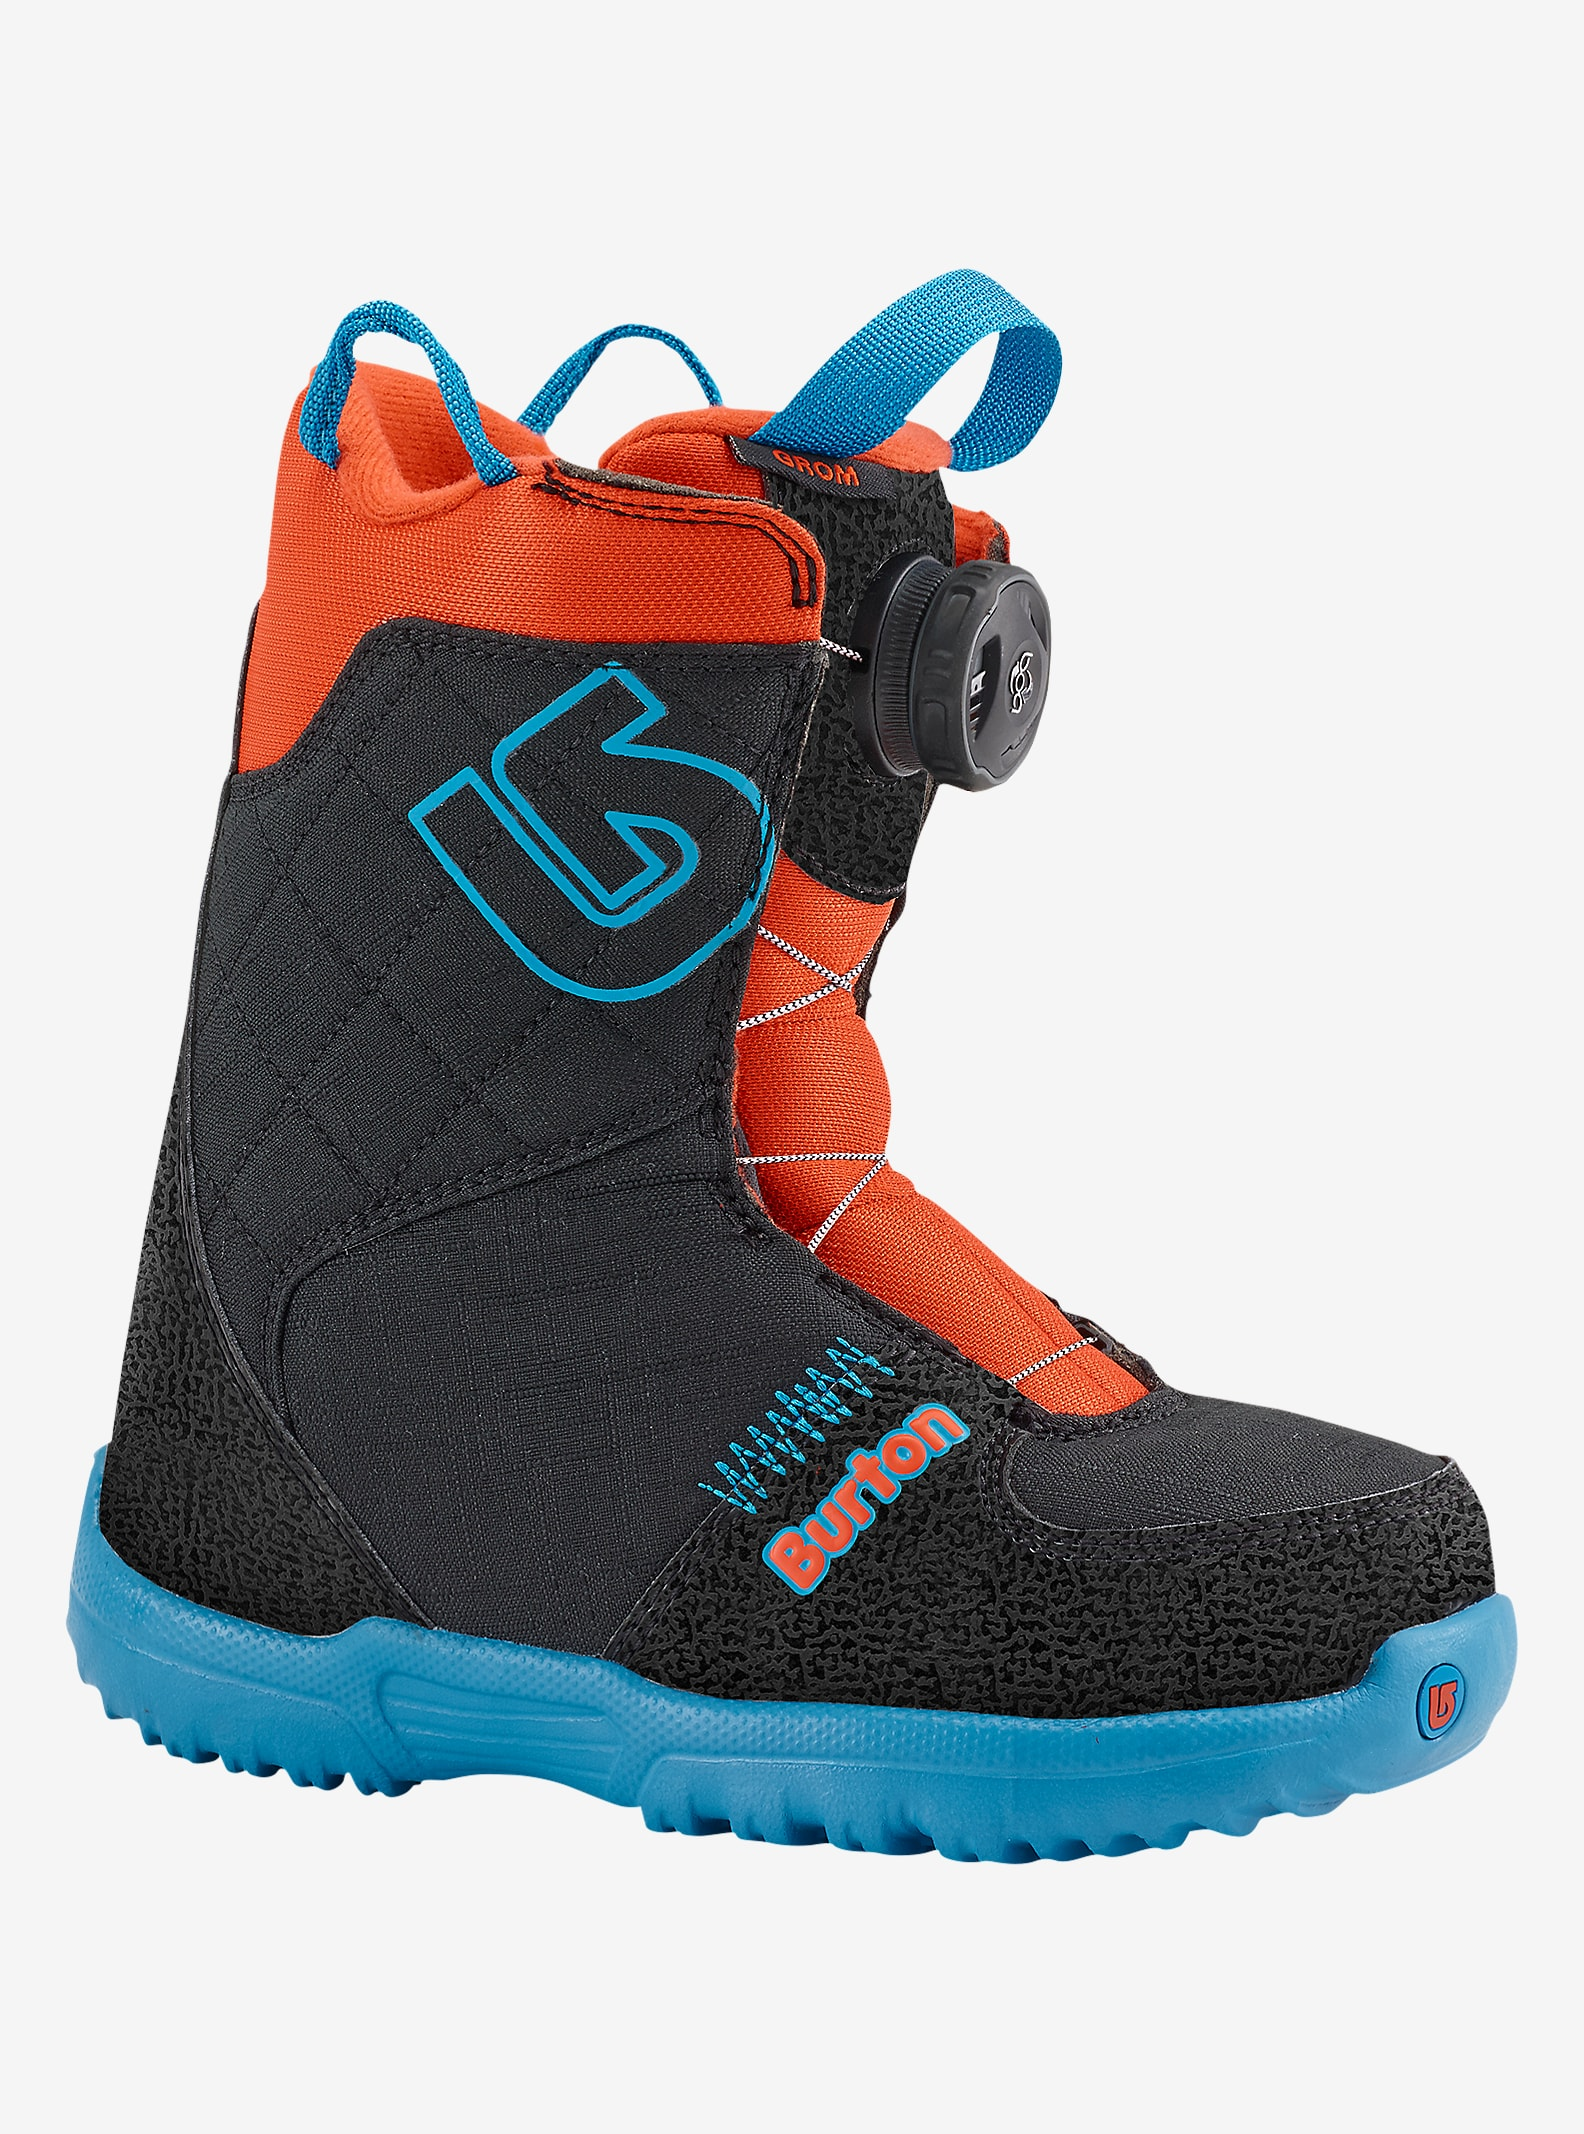 Burton Grom Boa® Snowboard Boot shown in Webslinger Blue